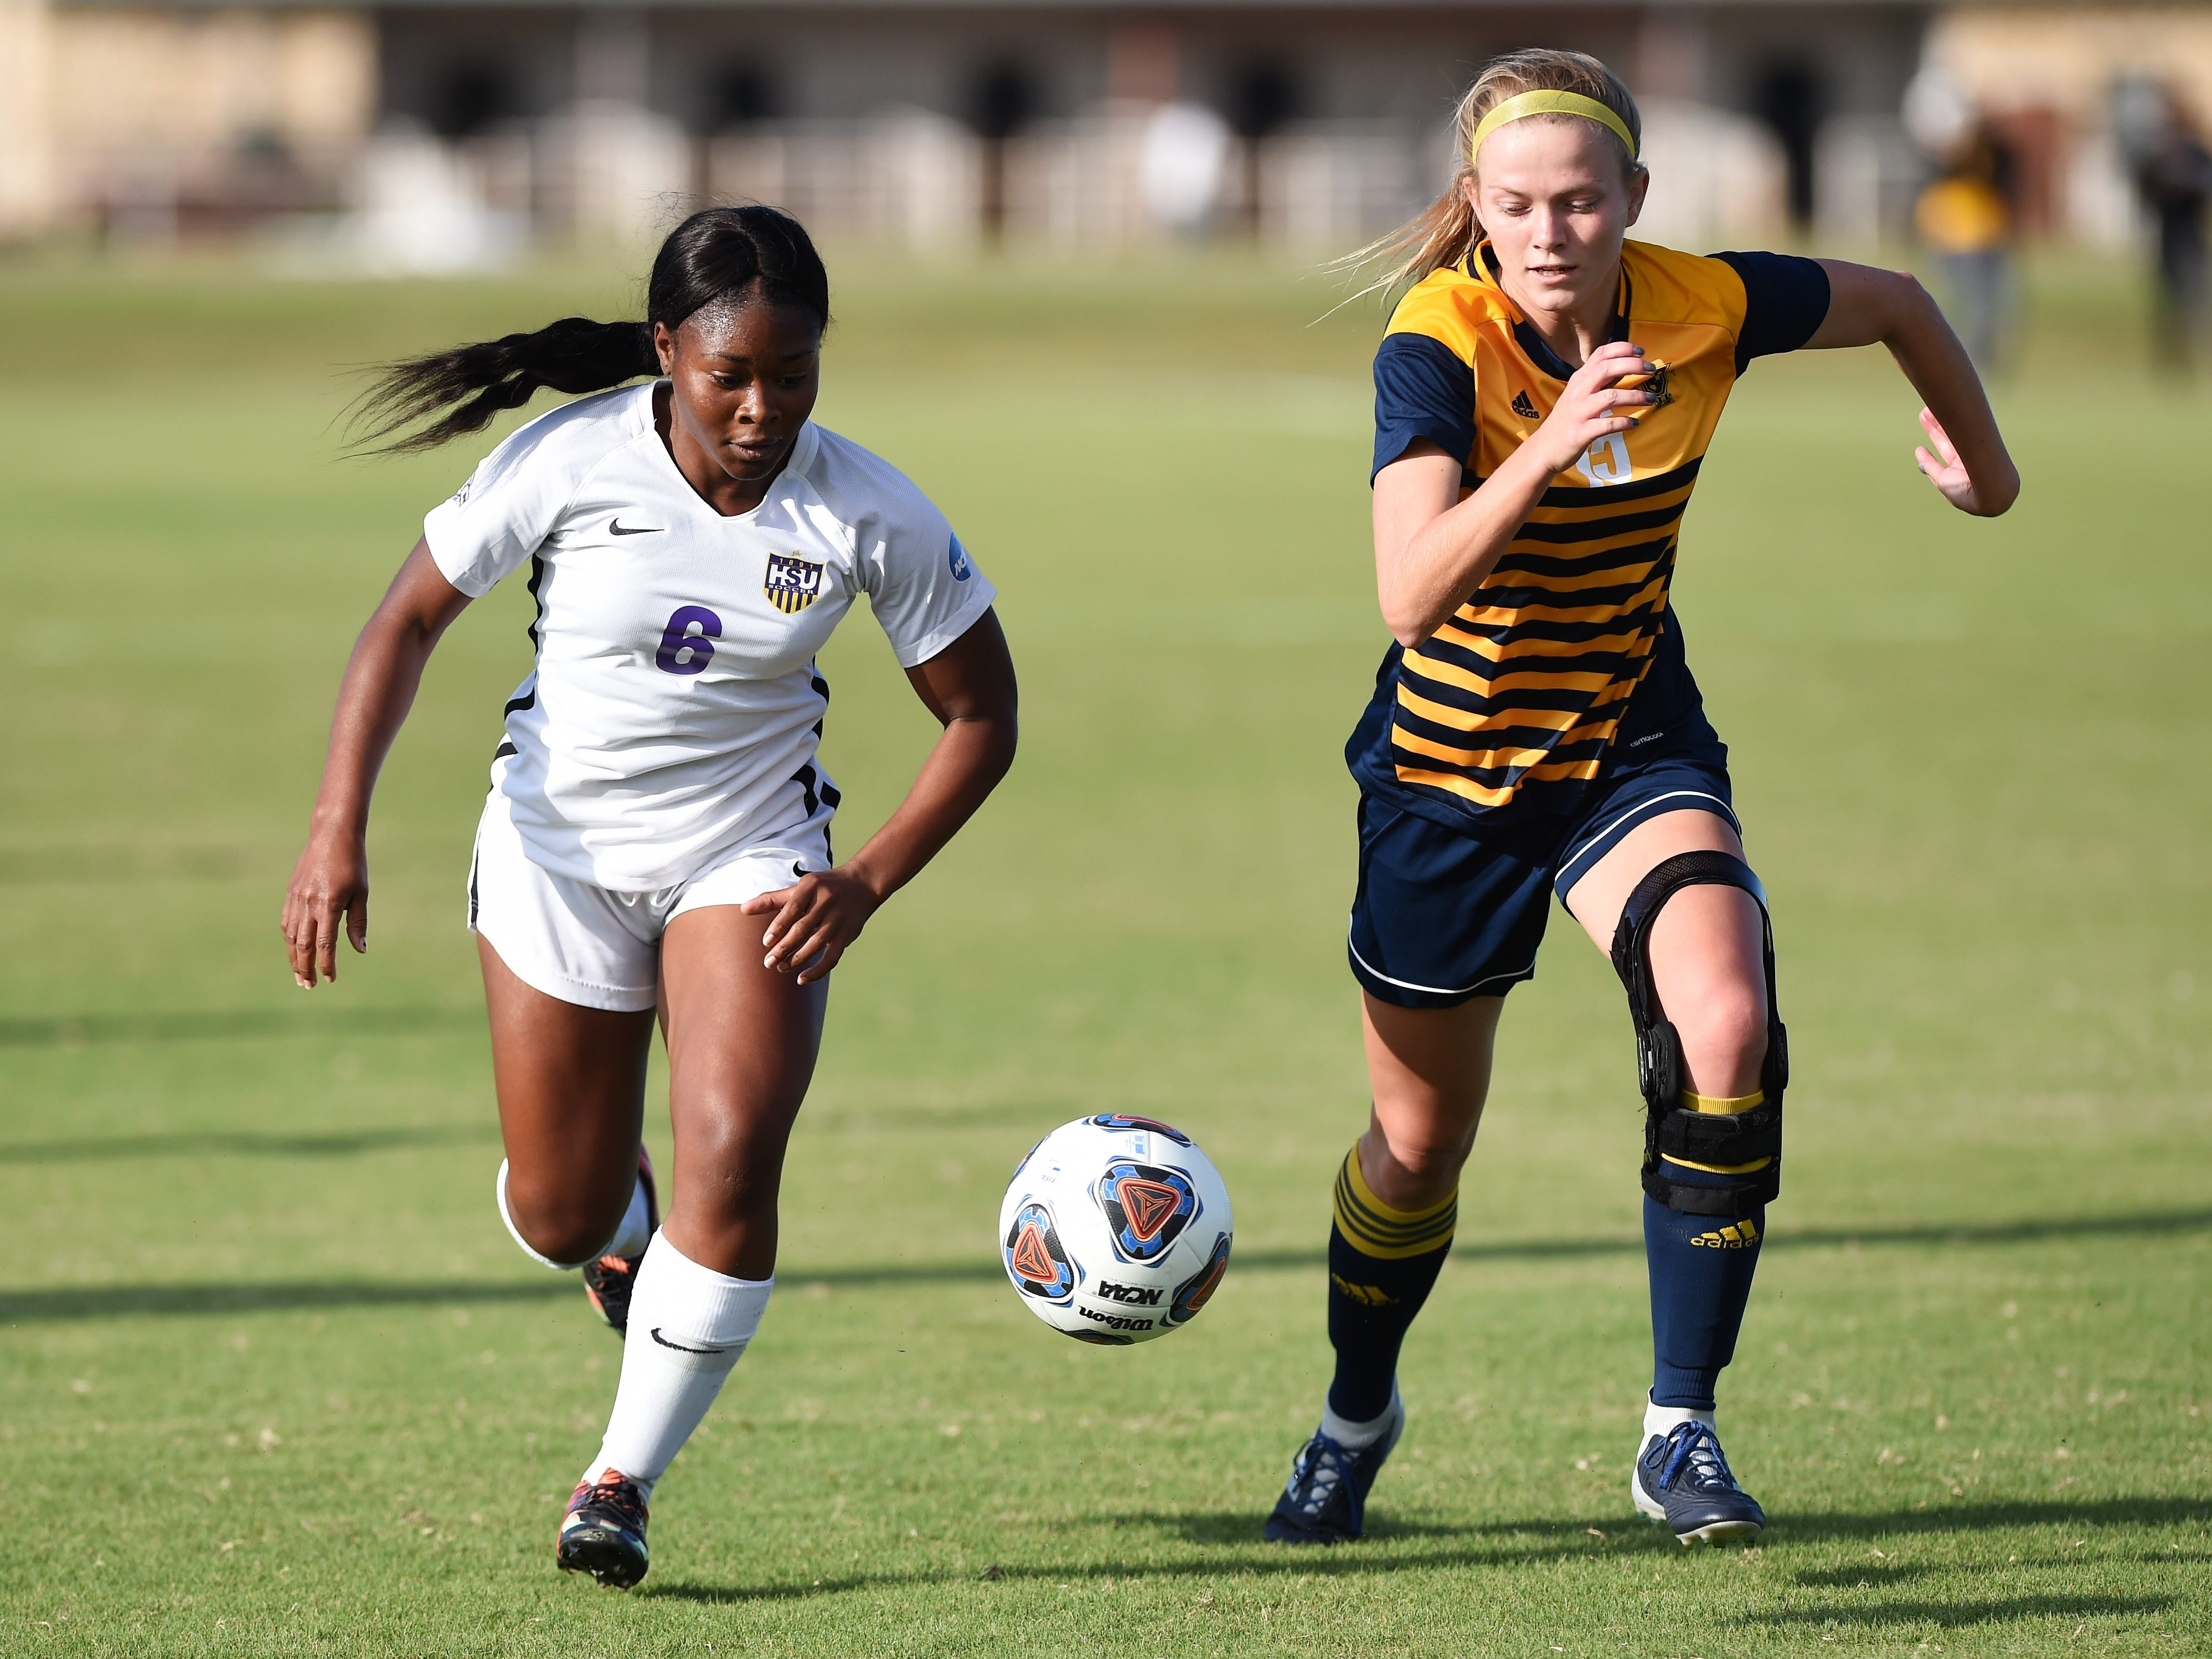 Hardin-Simmons forward Finda Kollie (6) races for the ball against a Howard Payne defender at the HSU Soccer Complex on Thursday, Oct. 11, 2018. The Cowgirls won 4-1.